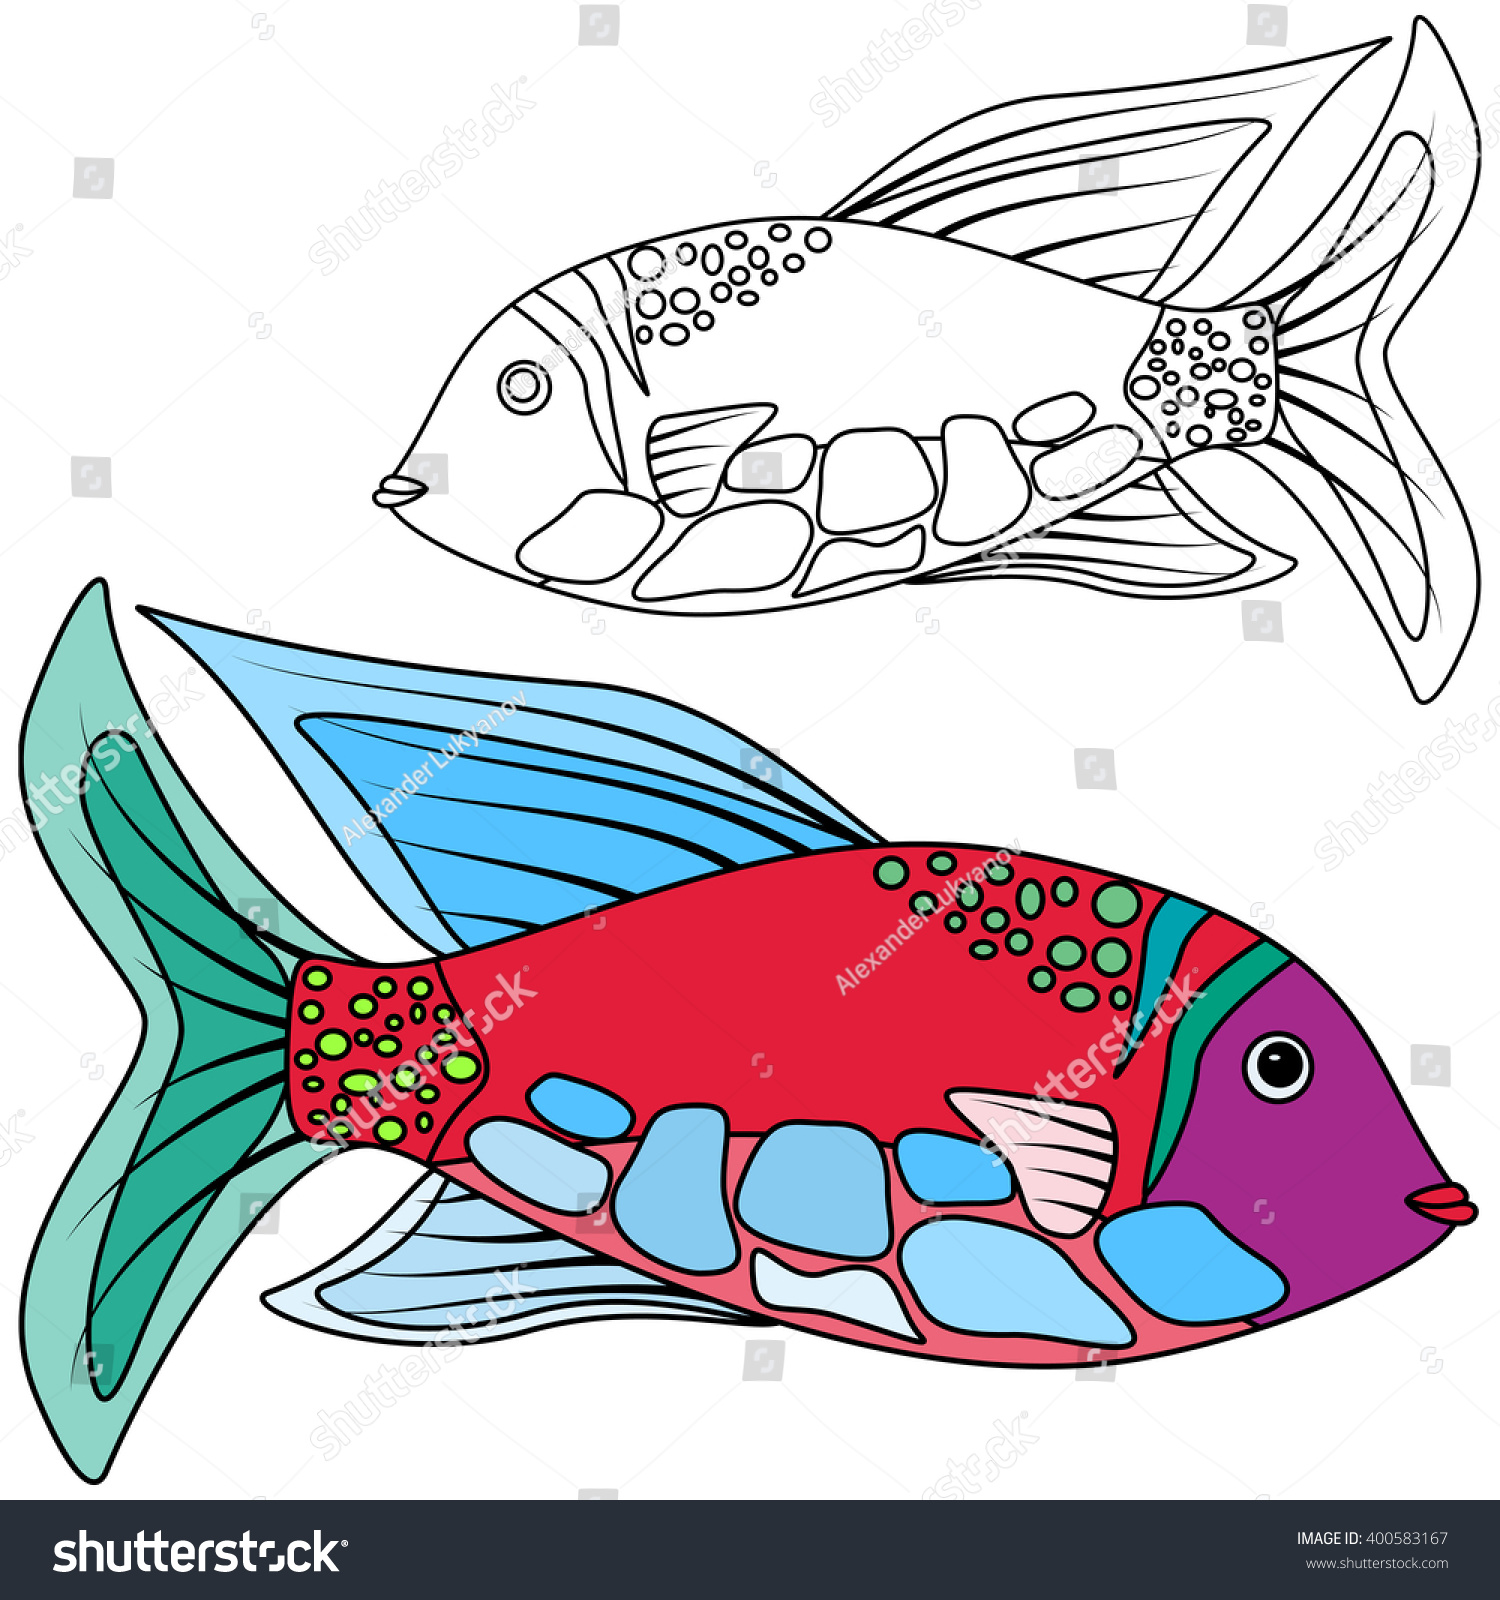 Fish Abstrac Kids Coloring Raster Graphics Stock Illustration ...